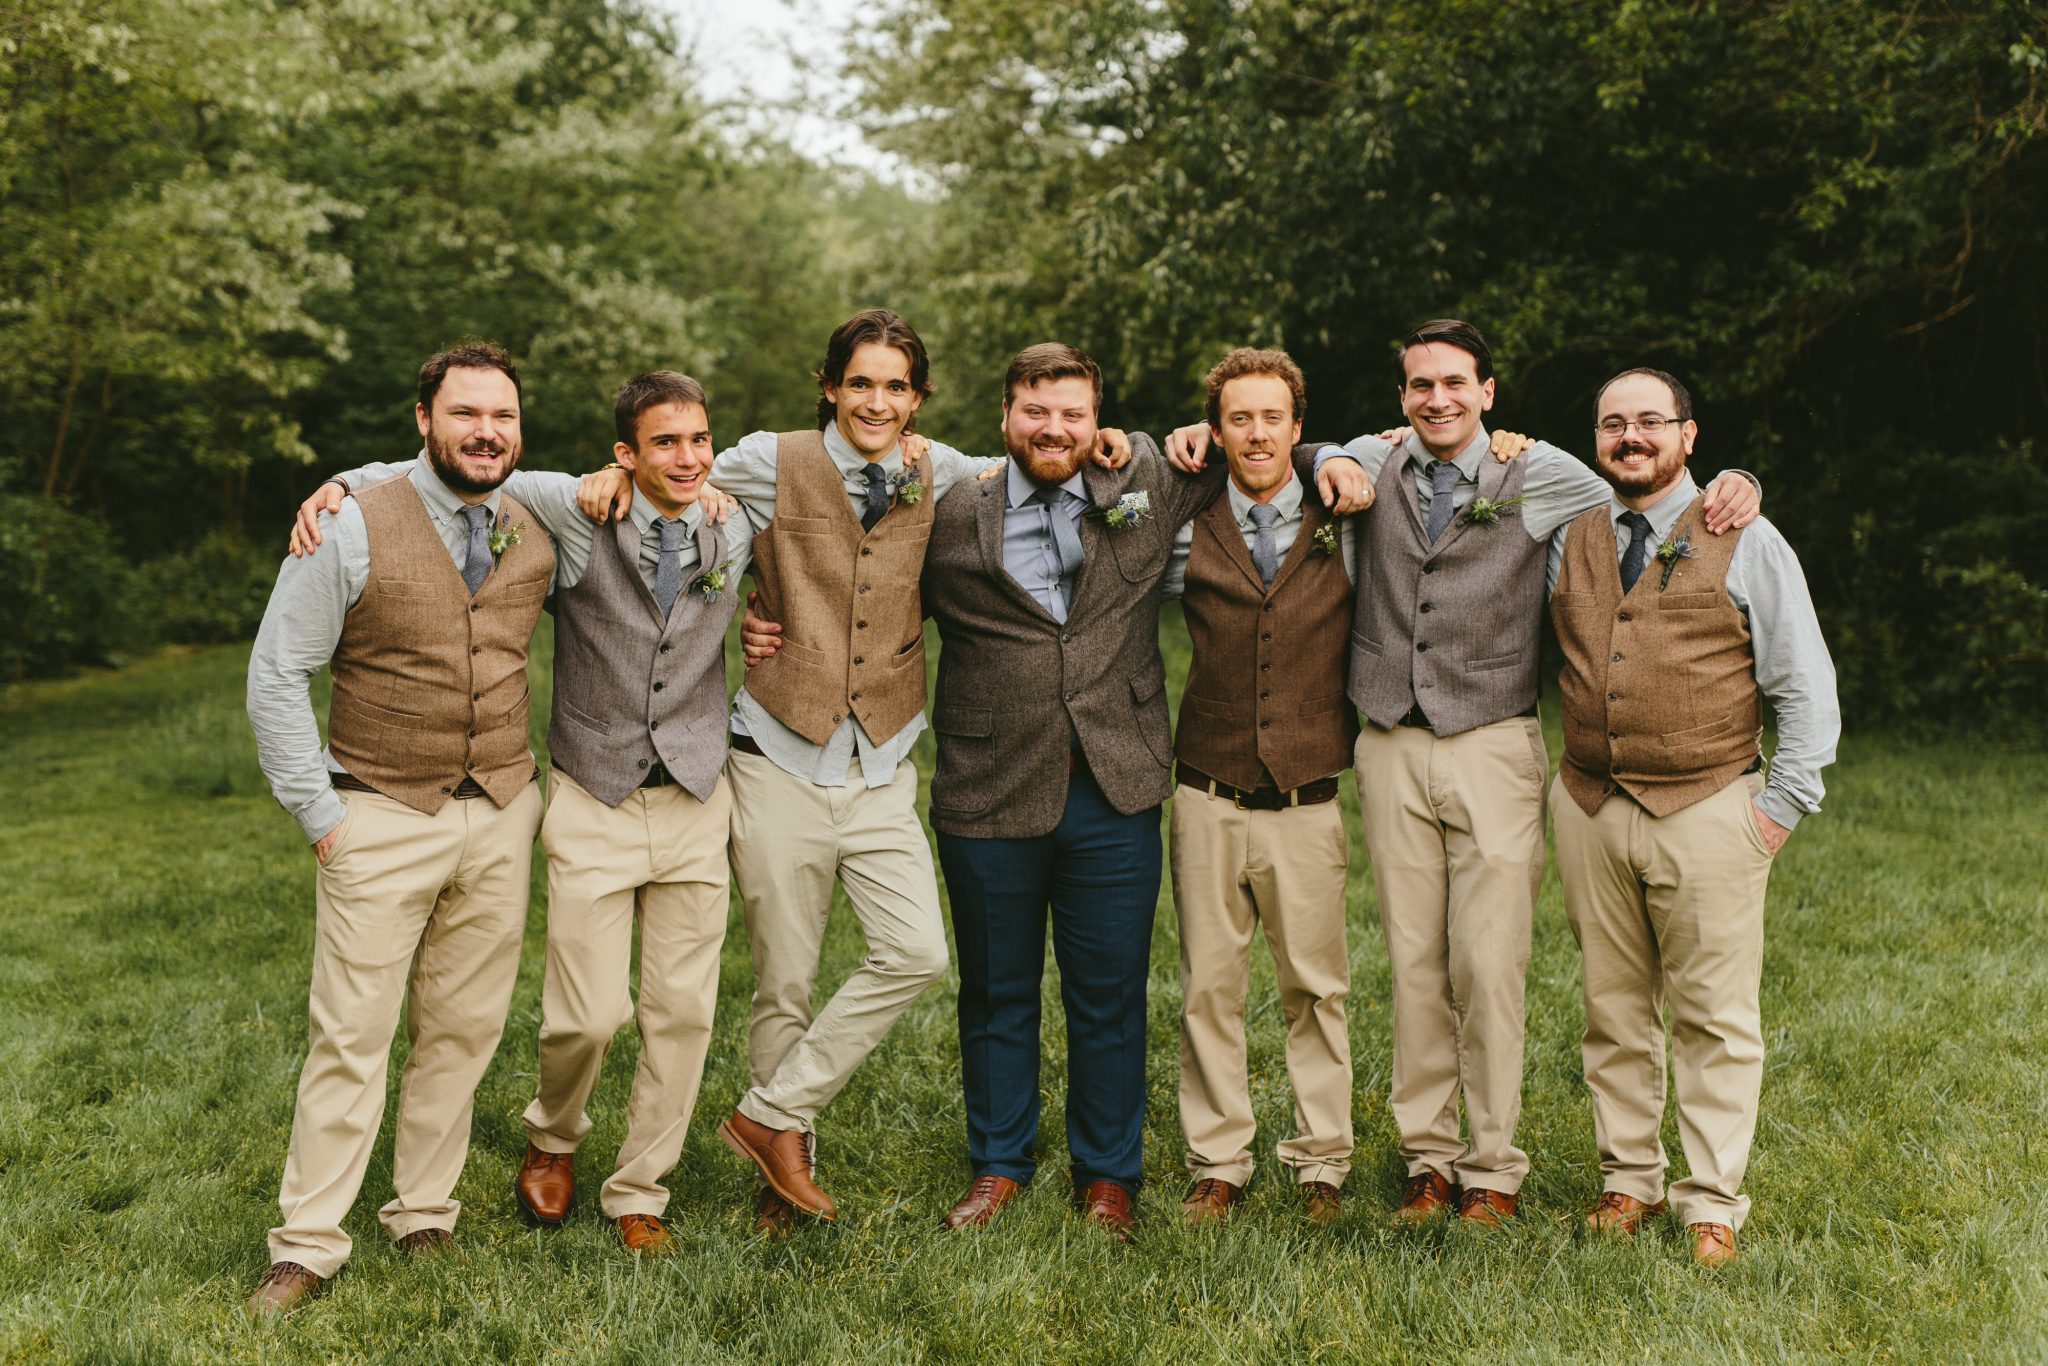 bridal party photos, unique groomsmen outfits, vintage groomsmen style,philadelphia documentary wedding photographer,brooklyn wedding photography, Brooklyn wedding, Philadelphia wedding photographer, Philadelphia wedding, Brooklyn new york photographer, unique wedding inspiration, fun wedding photos, romantic wedding, destination wedding photographer, wedding photography inspiration,barn wedding ideas, barn wedding, unique barn wedding inspiration